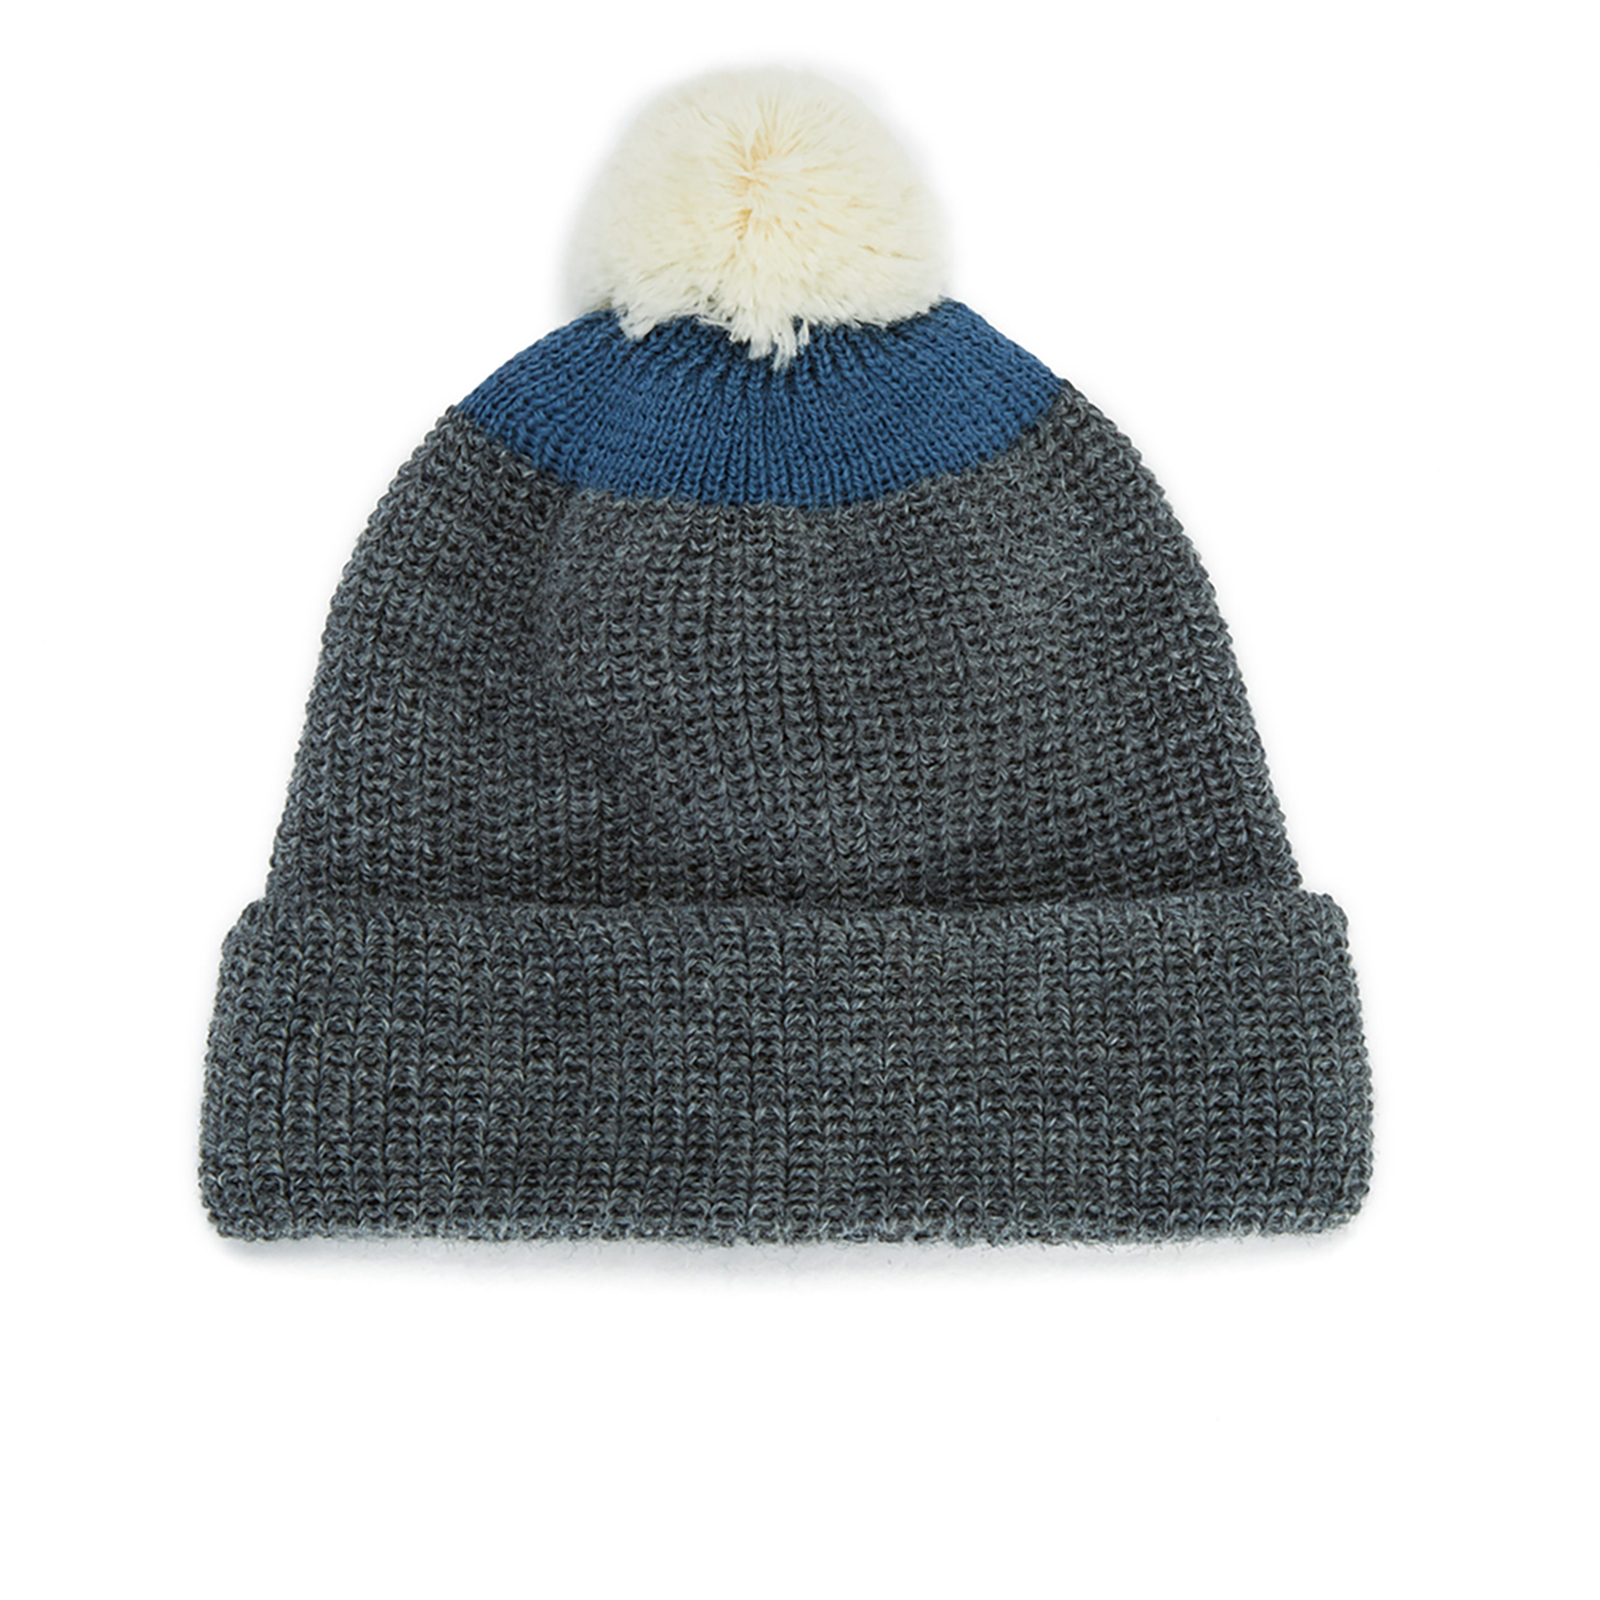 a082e8838cc A Kind of Guise Men s Farin Beanie Hat - Grey - Free UK Delivery over £50